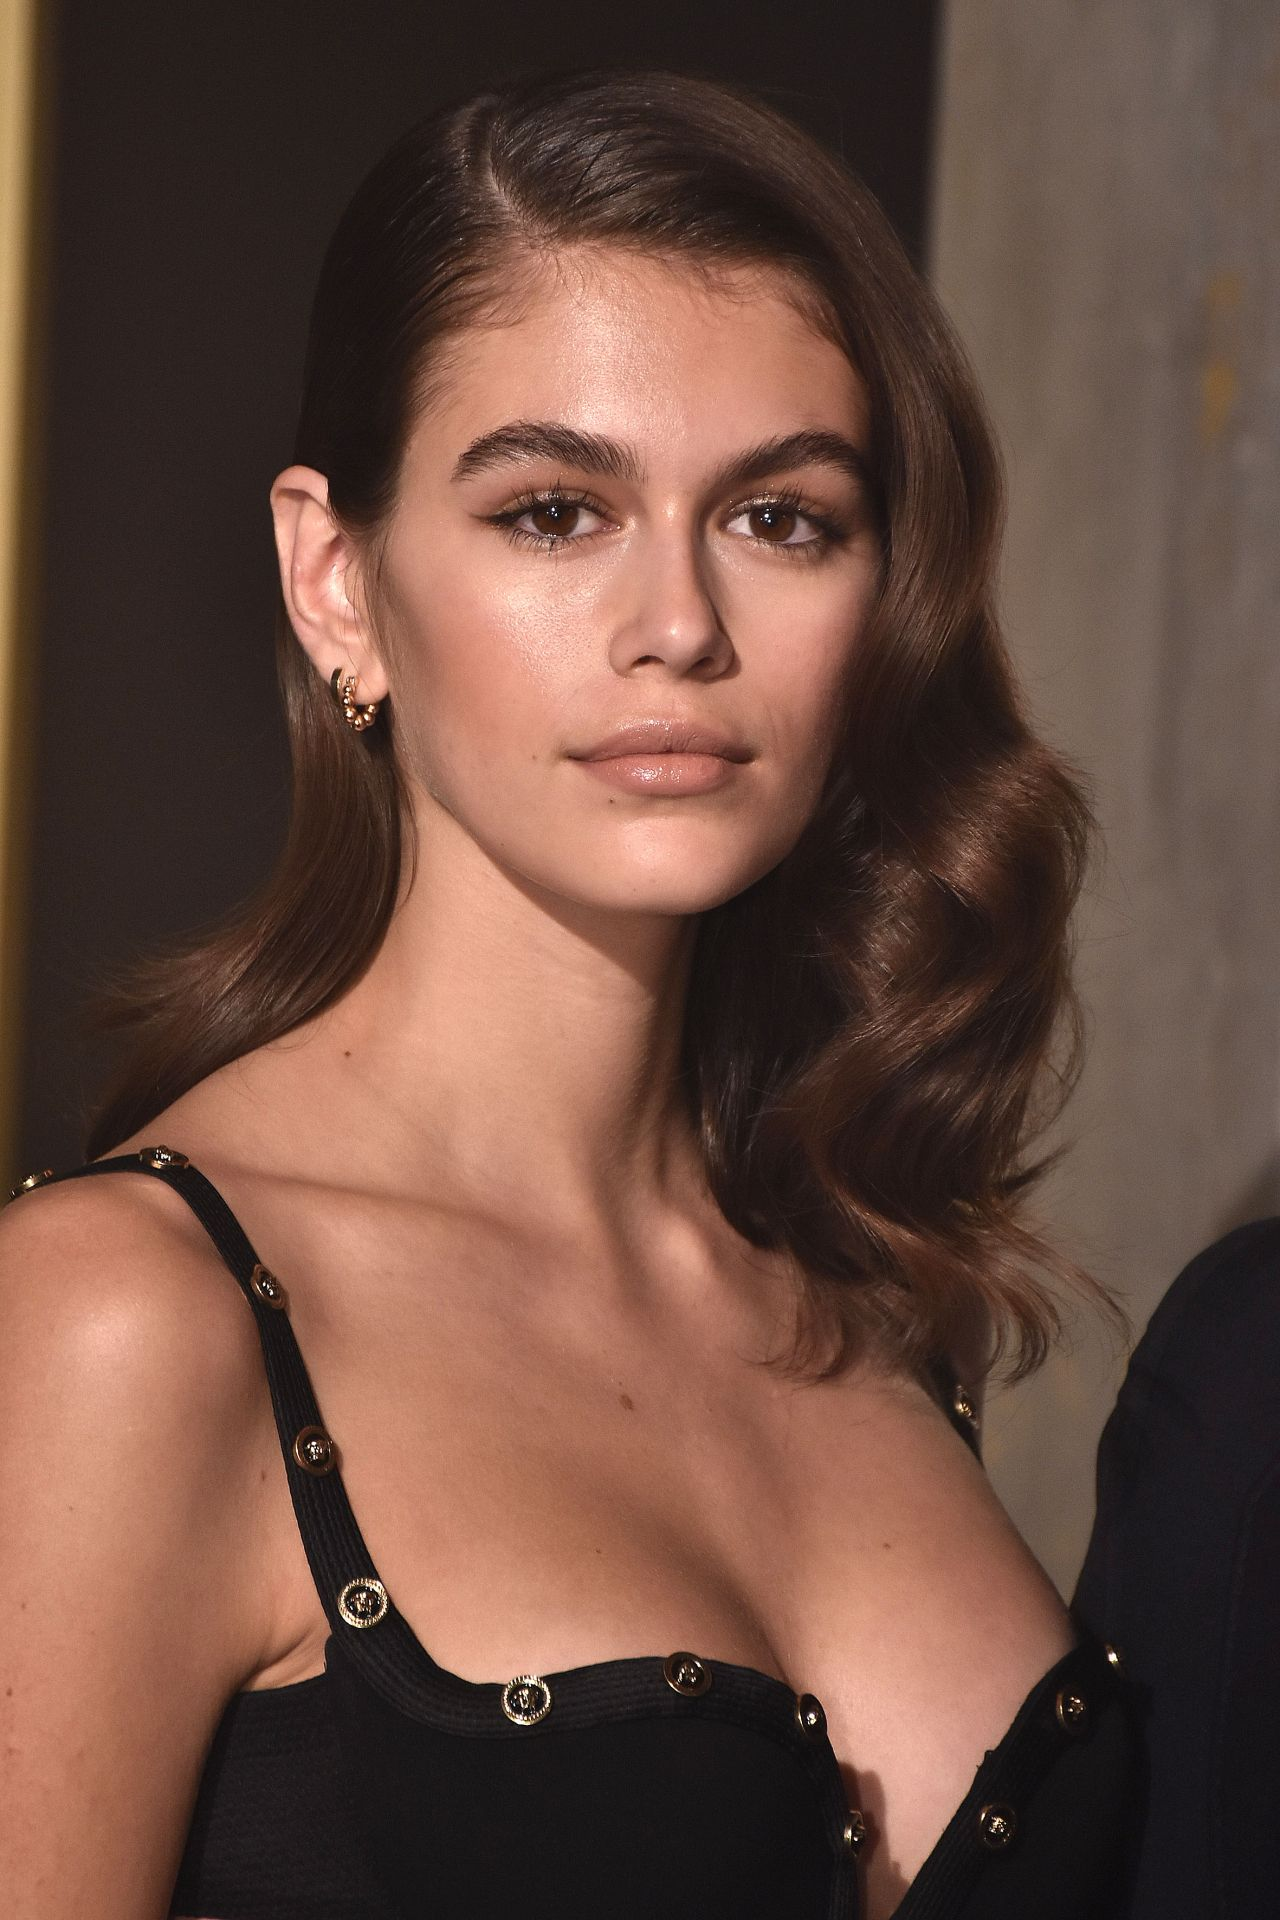 On To College Show 09 22 2017 >> Kaia Gerber - OMEGA Watch Tresor Launch Event in Berlin 05/02/2018